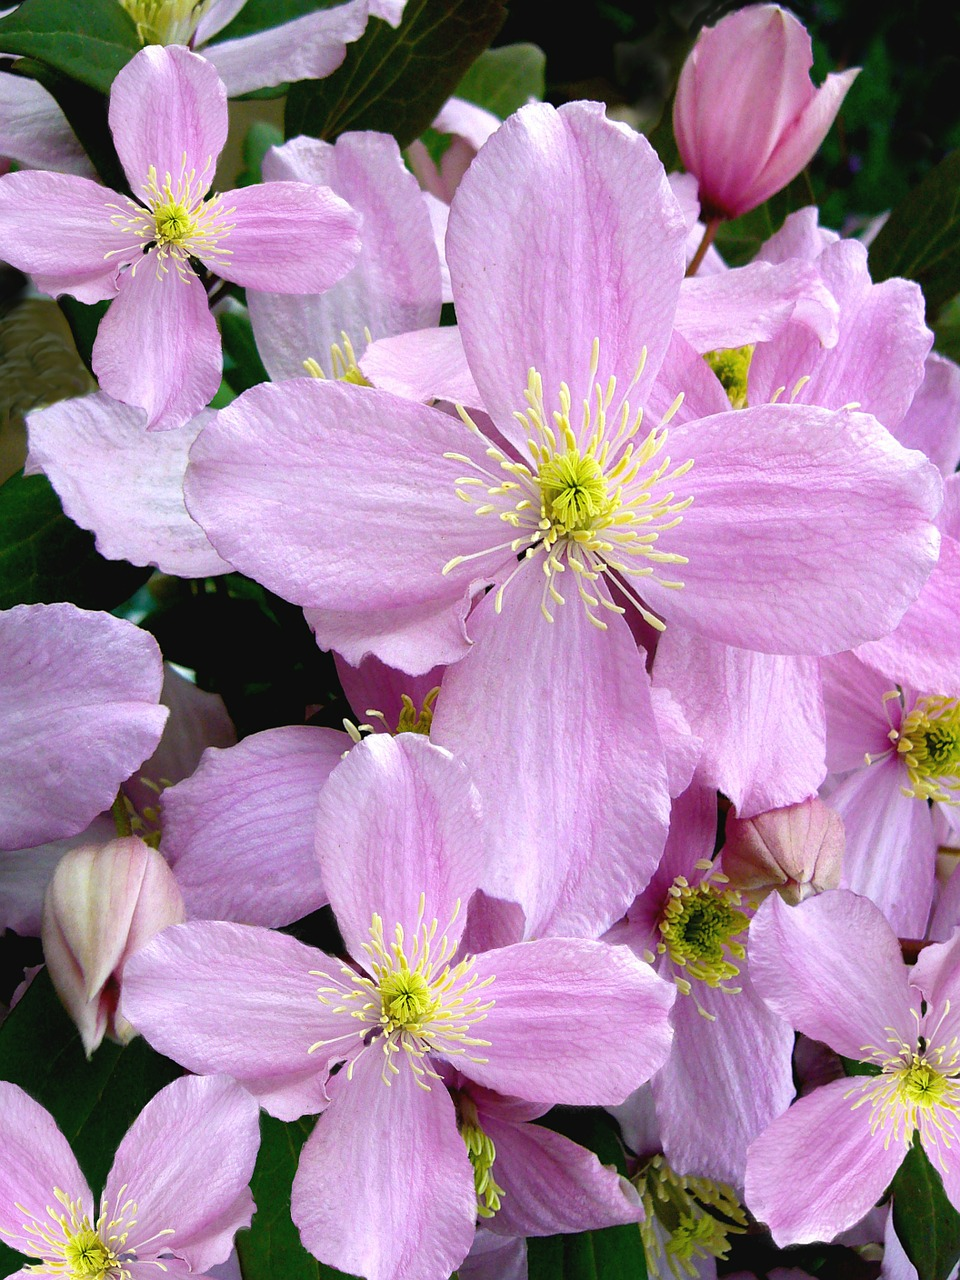 clematis montana flowers pink free photo